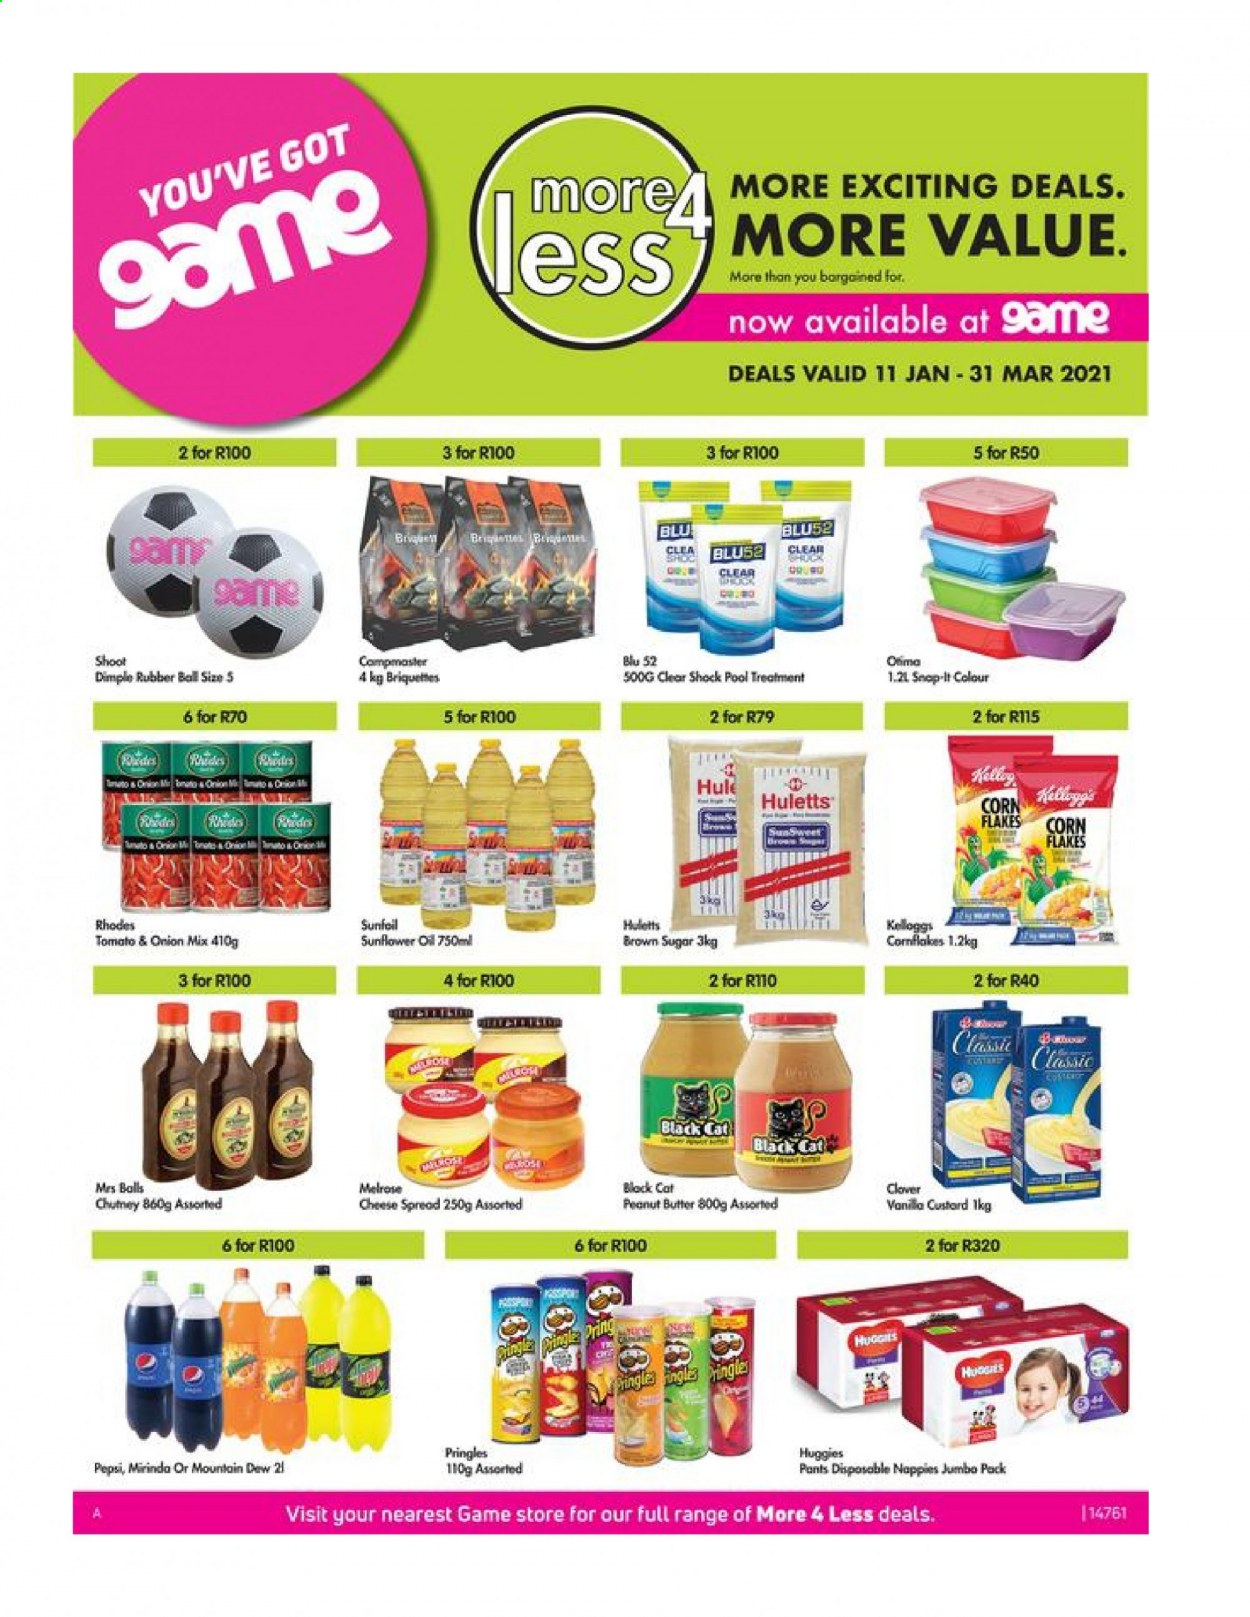 Game catalogue  - 01.11.2021 - 03.31.2021 - Sales products - corn, custard, corn flakes, Mountain Dew, diapers, ball, brown sugar, sugar, sunflower oil, Huggies, Pringles, cheese spread, pants, peanut butter, Pepsi, pool, briquettes, cheese, flakes, sunflower, nappies, onion, rubber. Page 1.